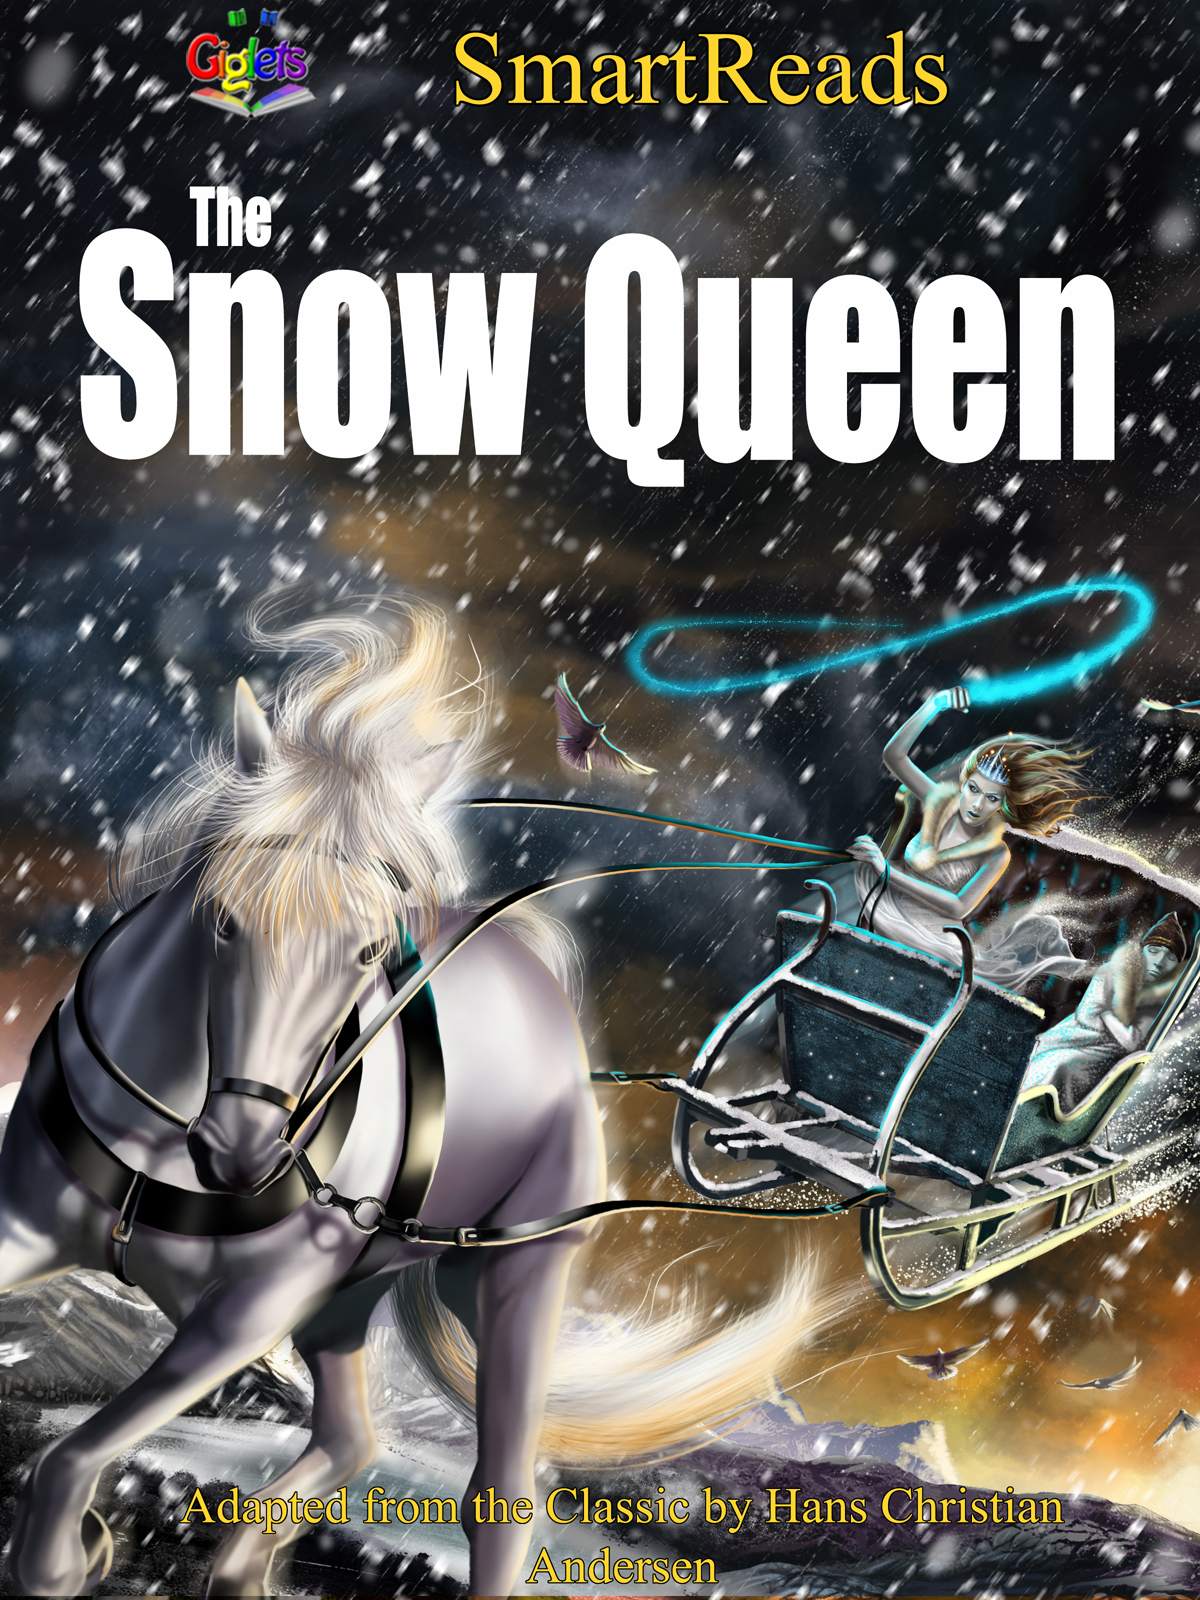 SmartReads The Snow Queen